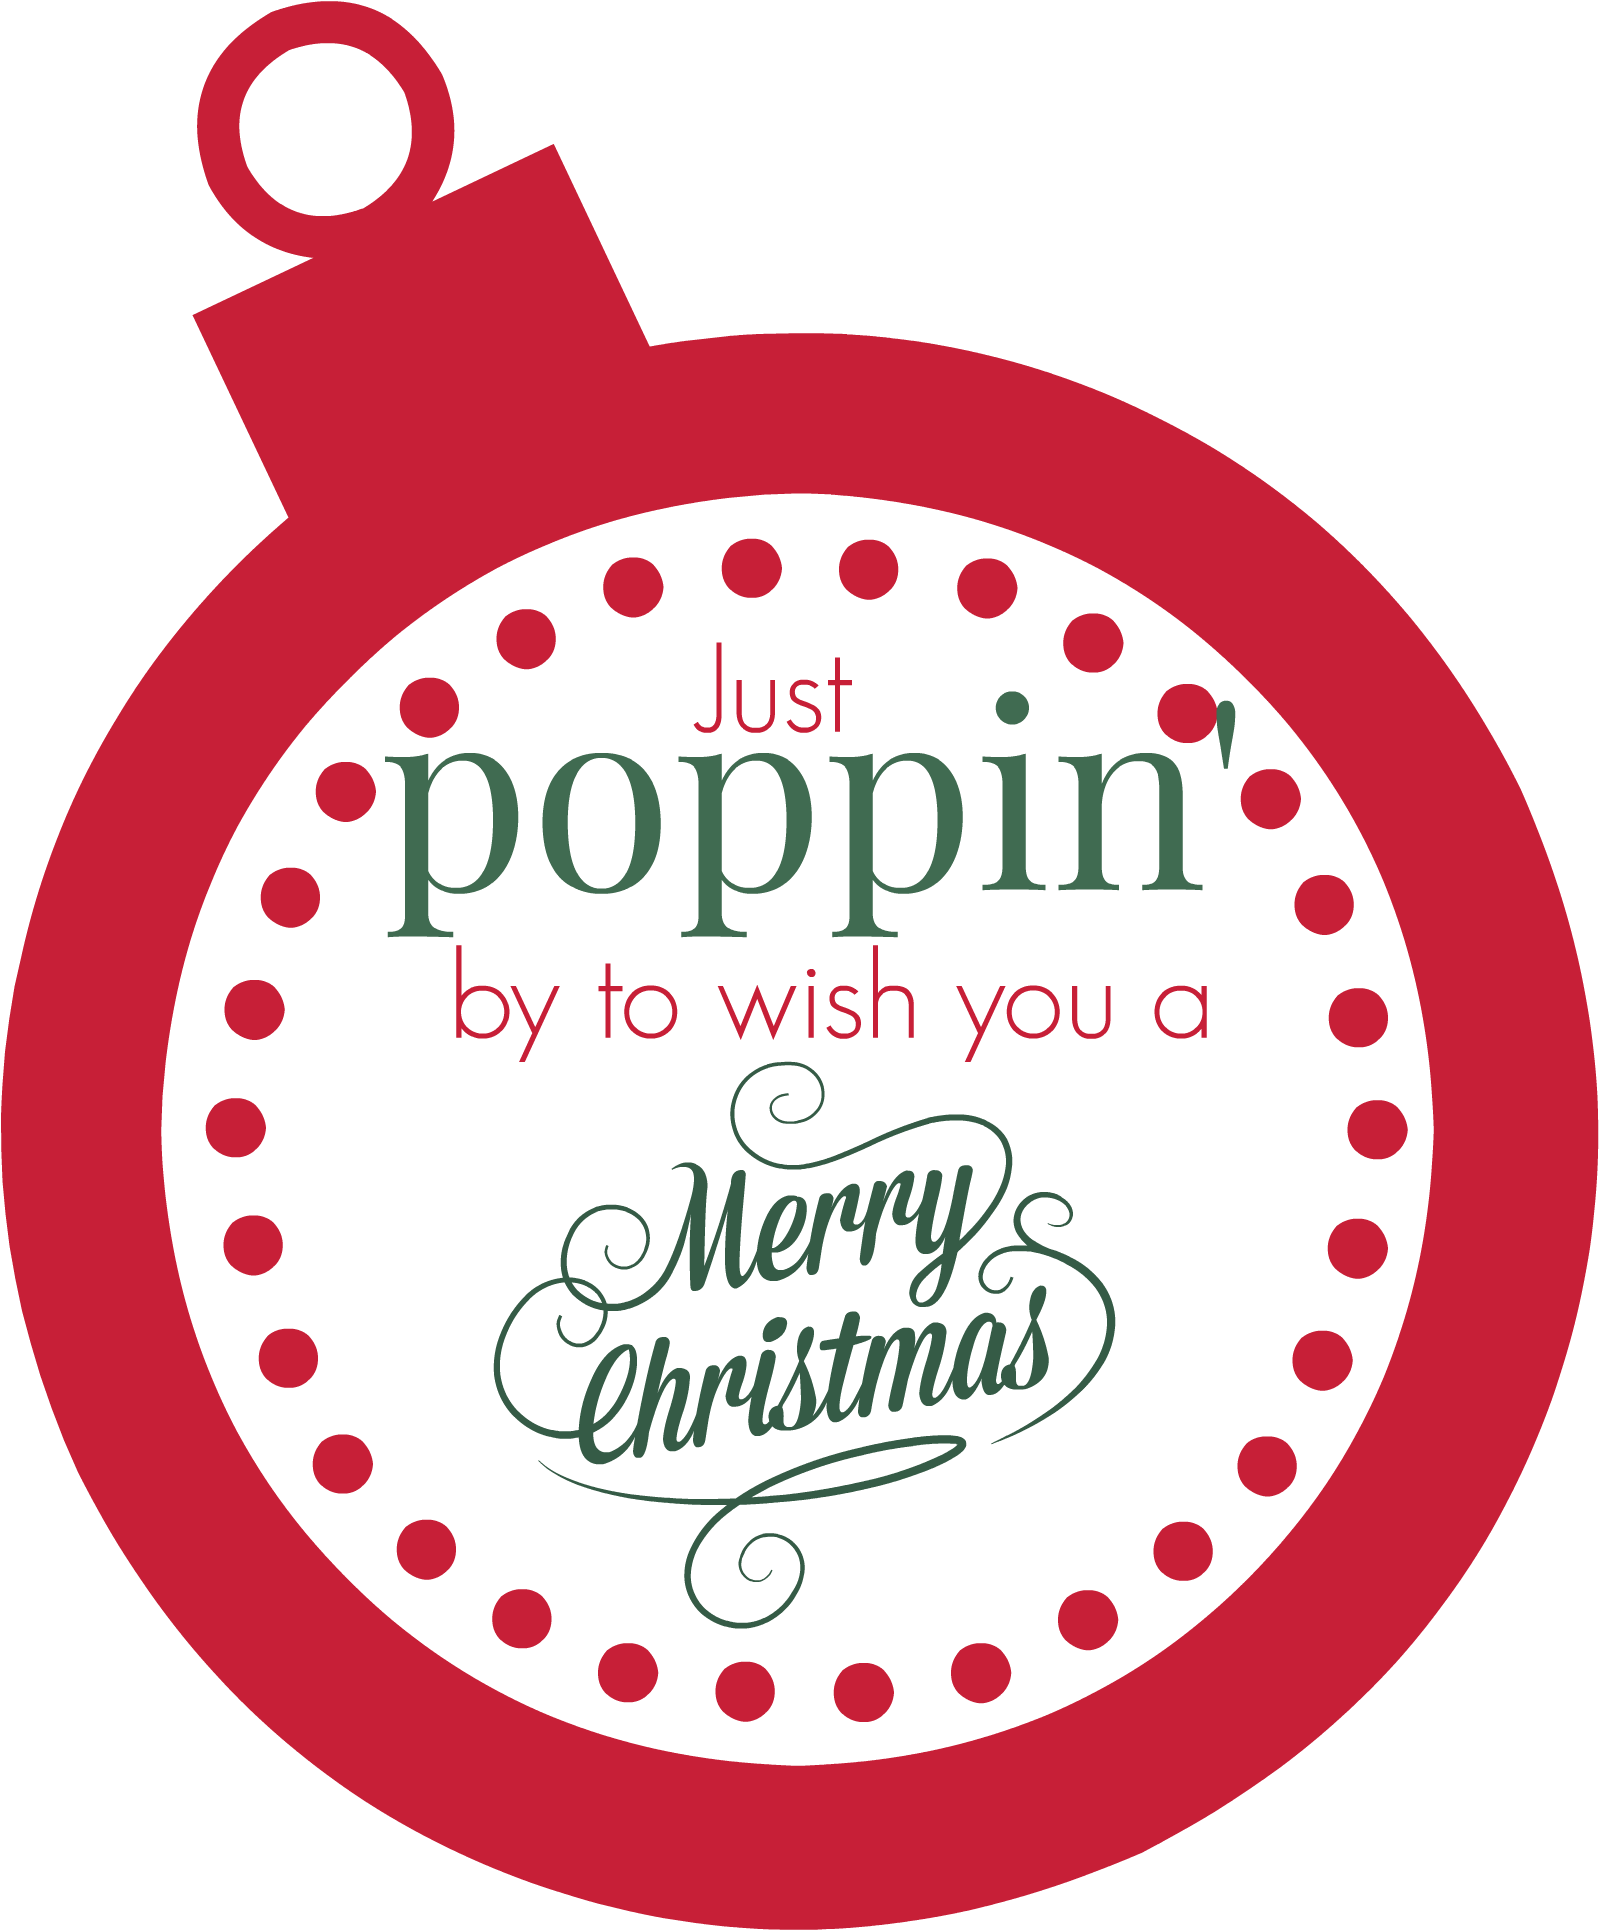 Transparent christmas gift tag clipart free - Make These Popcorn Christmas Gifts In Bulk This Year - Printable Christmas Popcorn Labels